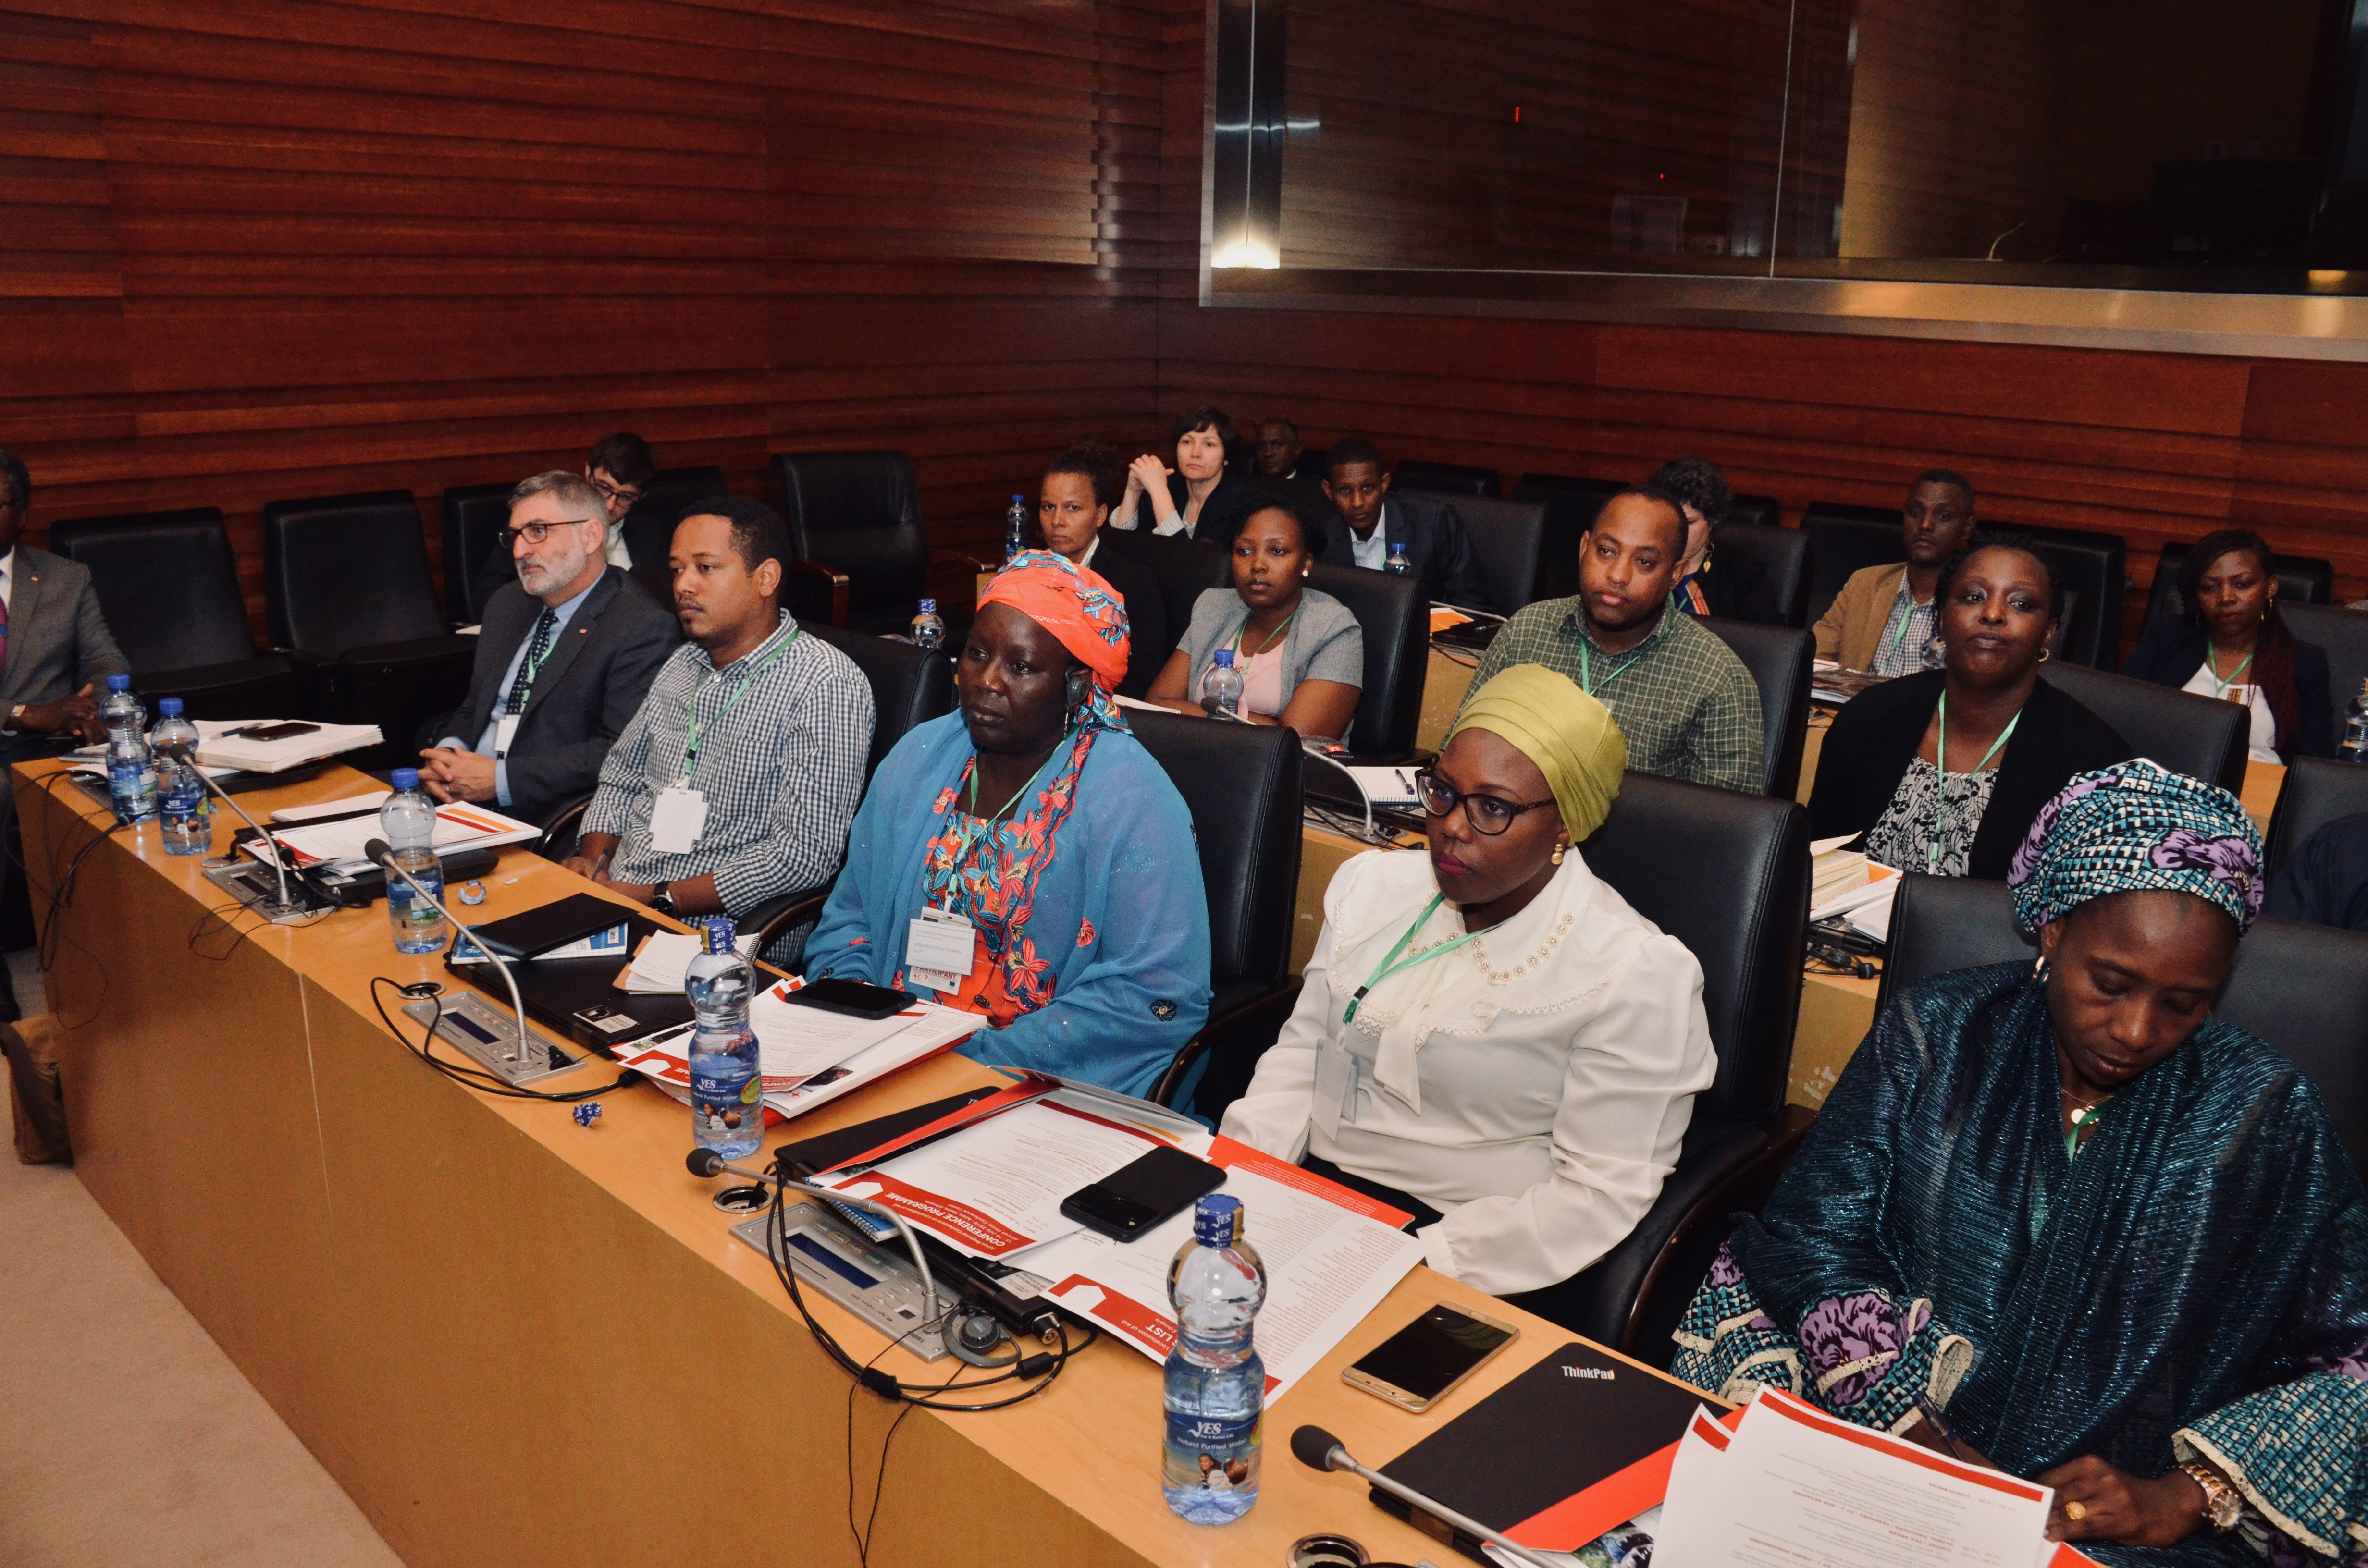 DSC_0532Africa Regional Conference on Localisation Day 1 Opening Session Plenary - Participants 4